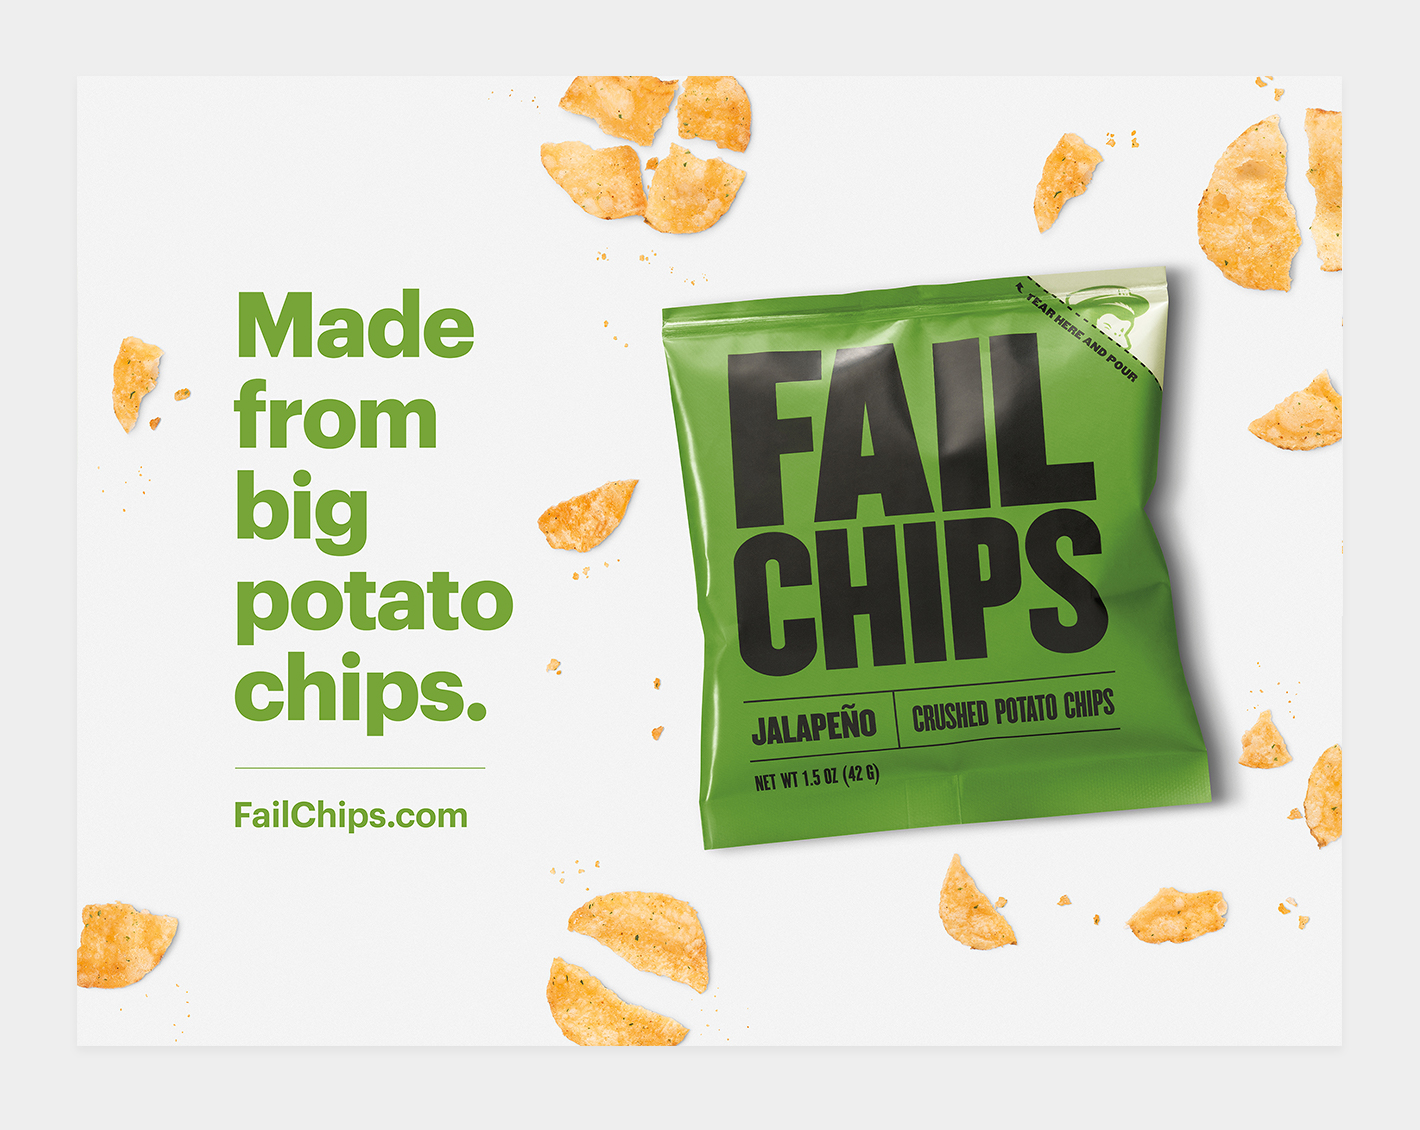 FailChips copy 3